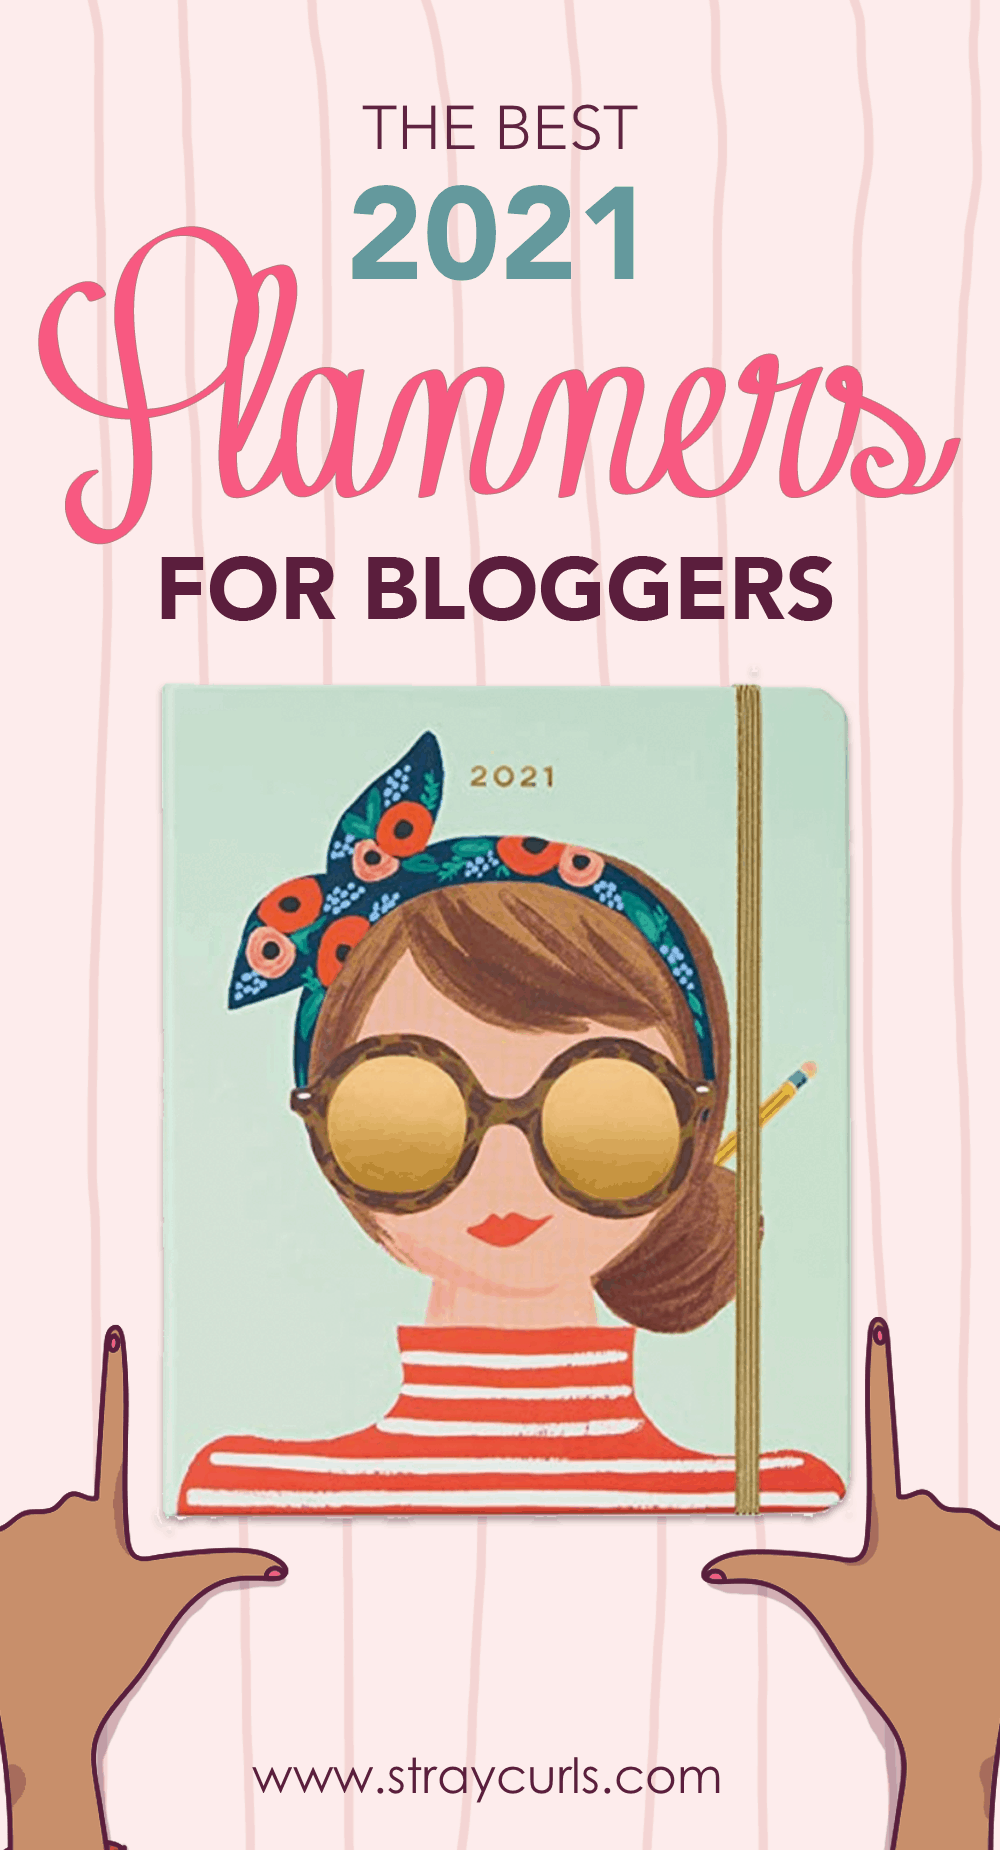 Read this amazing list and review of the best 2021 planners for bloggers, freelancers and lady entrepreneurs. Each planner is a yearly planner where you can write your daily to-dos, blogging goals and action, and notes. Perfect for blogging.